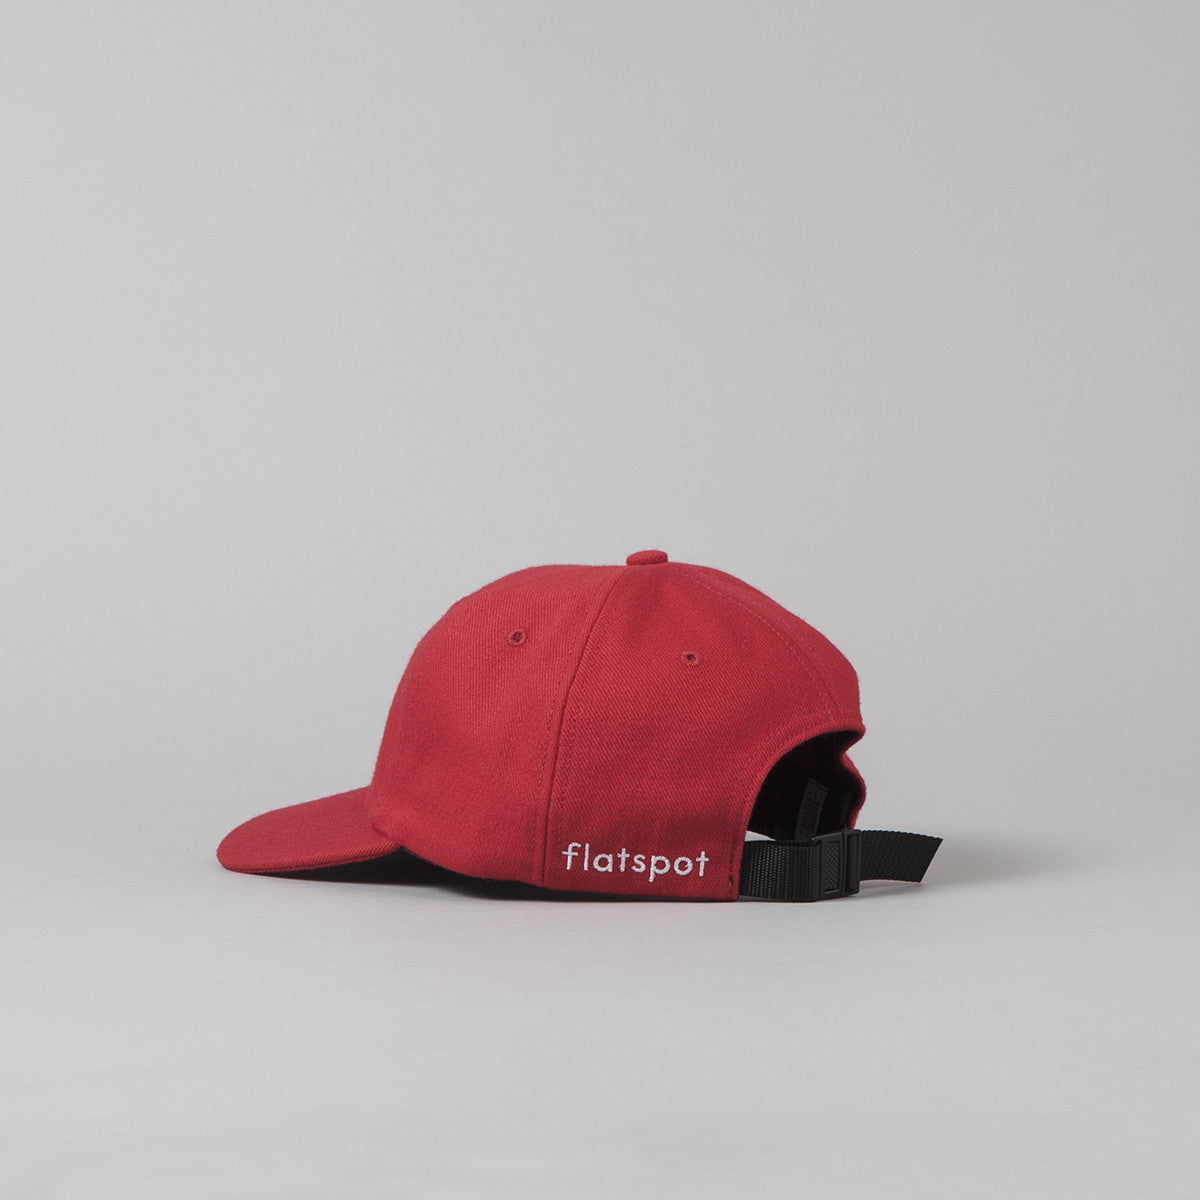 Flatspot Wool Polo Cap - Red